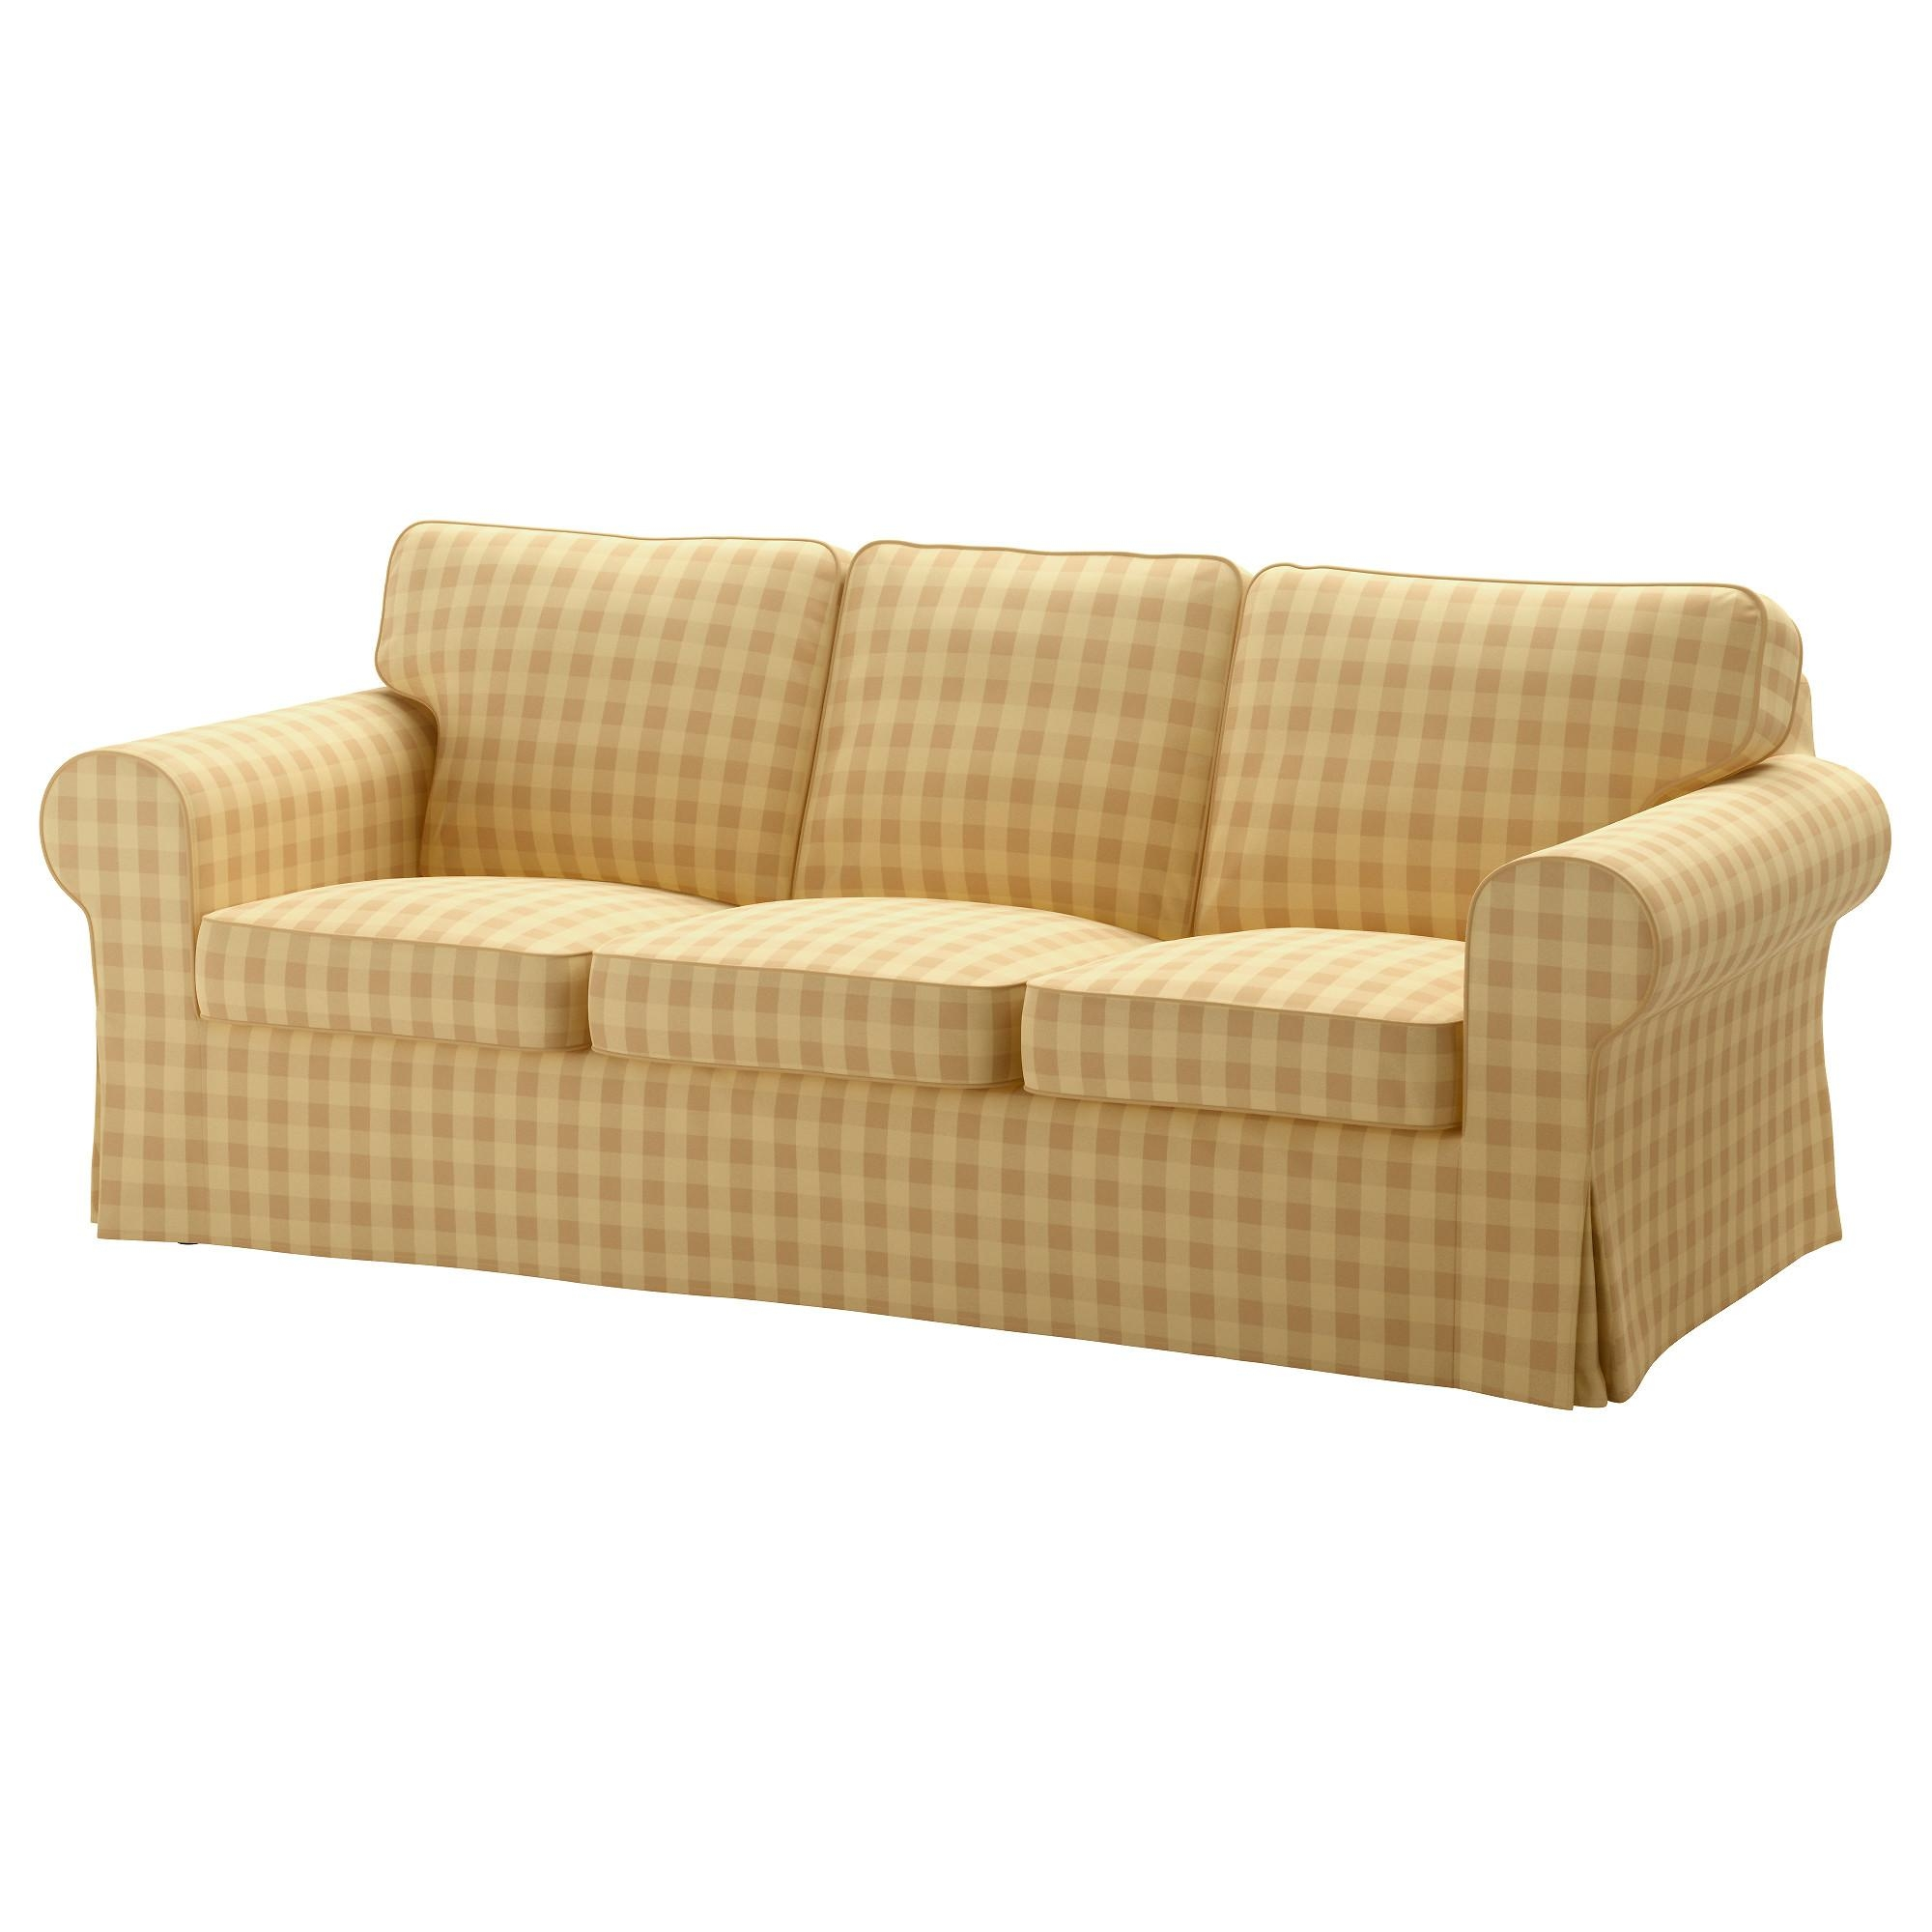 Fabric Sofas – Modern & Contemporary – Ikea Within Funky Sofas For Sale (Image 1 of 20)